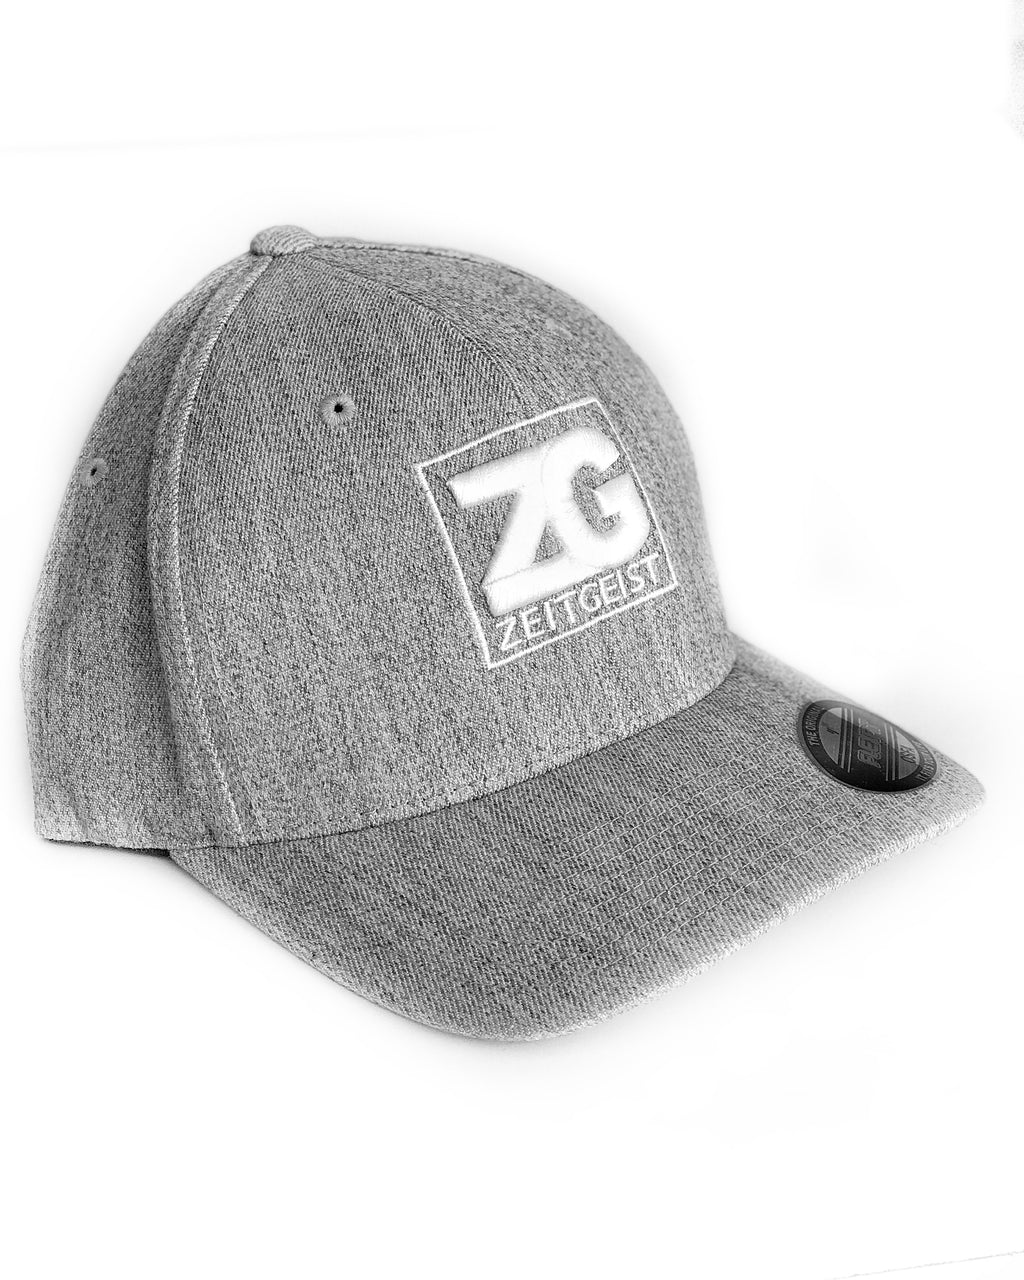 Zeitgeist Cap Light Heather with White Logo ZG5165